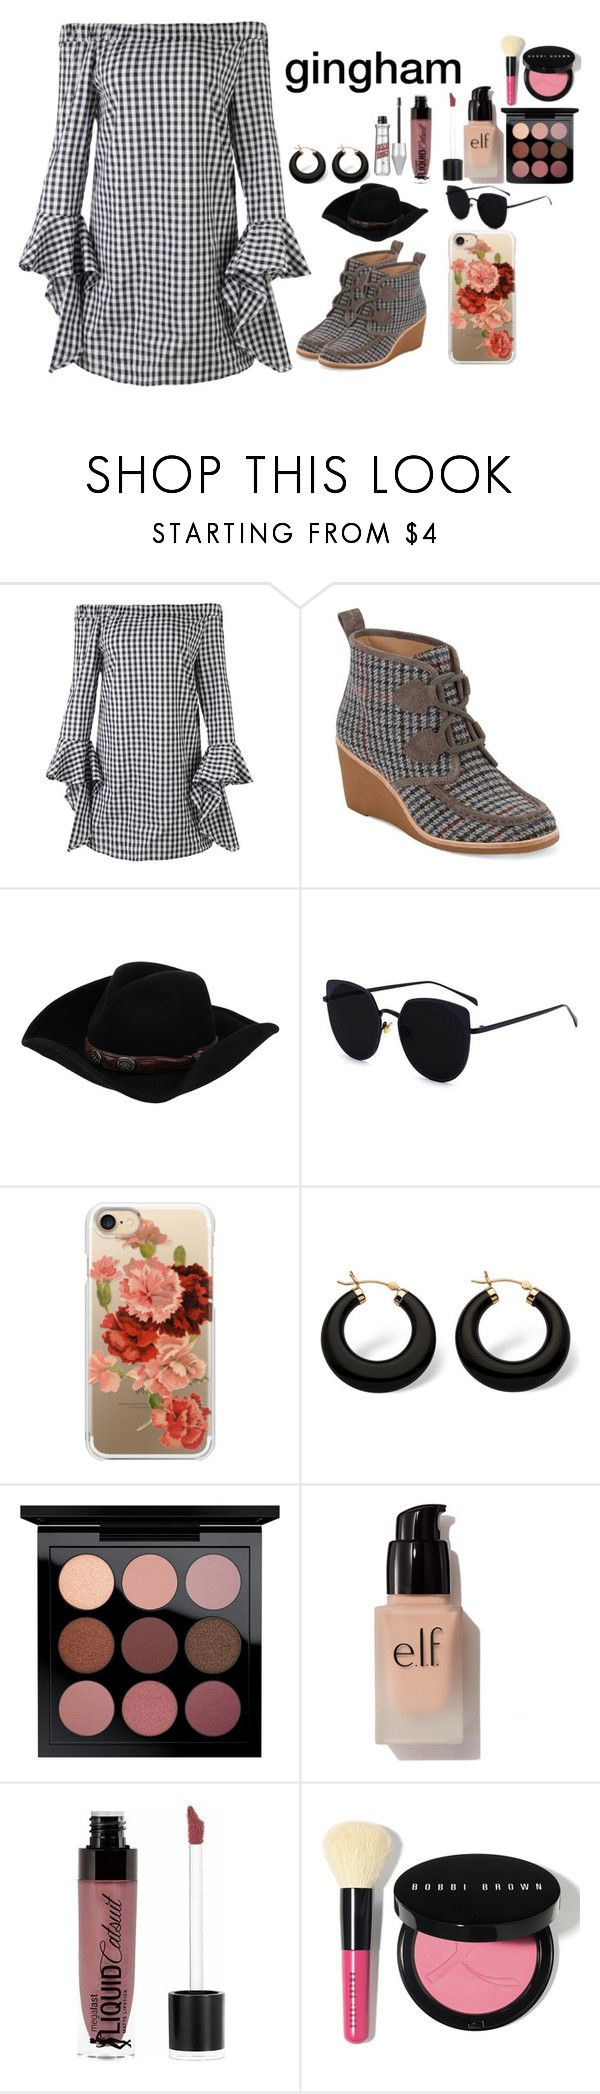 """""""Gingham dress"""" by ritisha-singh ❤ liked on Polyvore featuring Nasty Gal, G.H. Bass & Co., Stetson, Casetify, Palm Beach Jewelry, MAC Cosmetics, e.l.f., Wet n Wild and Bobbi Brown Cosmetics"""